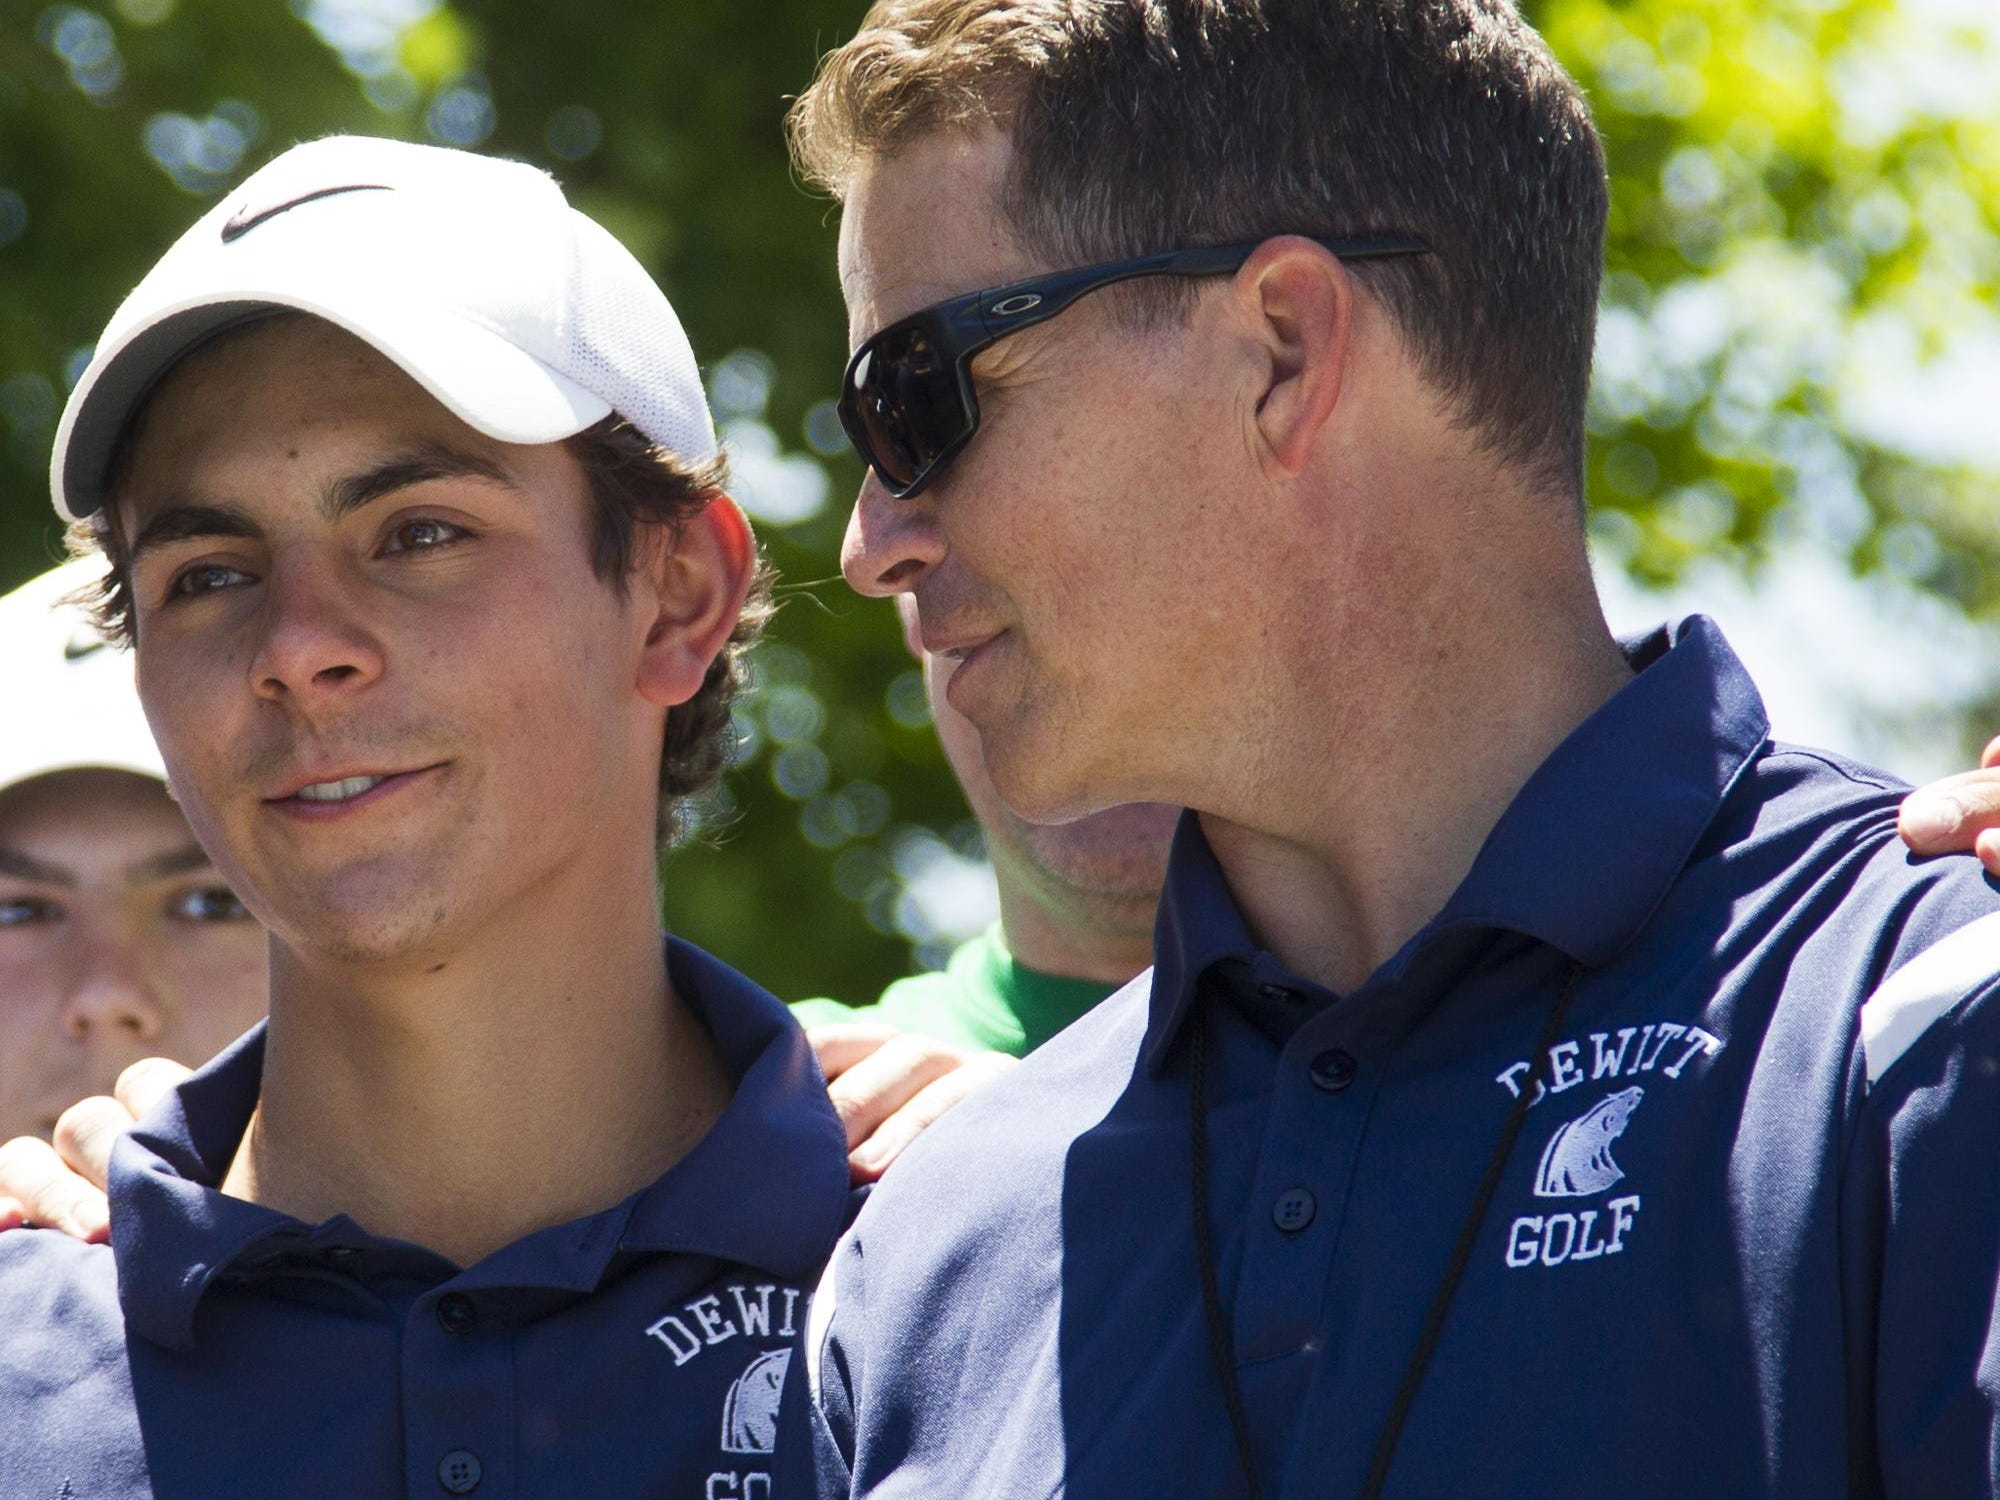 Dave Koenigsknecht, right, guided the DeWitt boys golf team to a Division 2 state title.